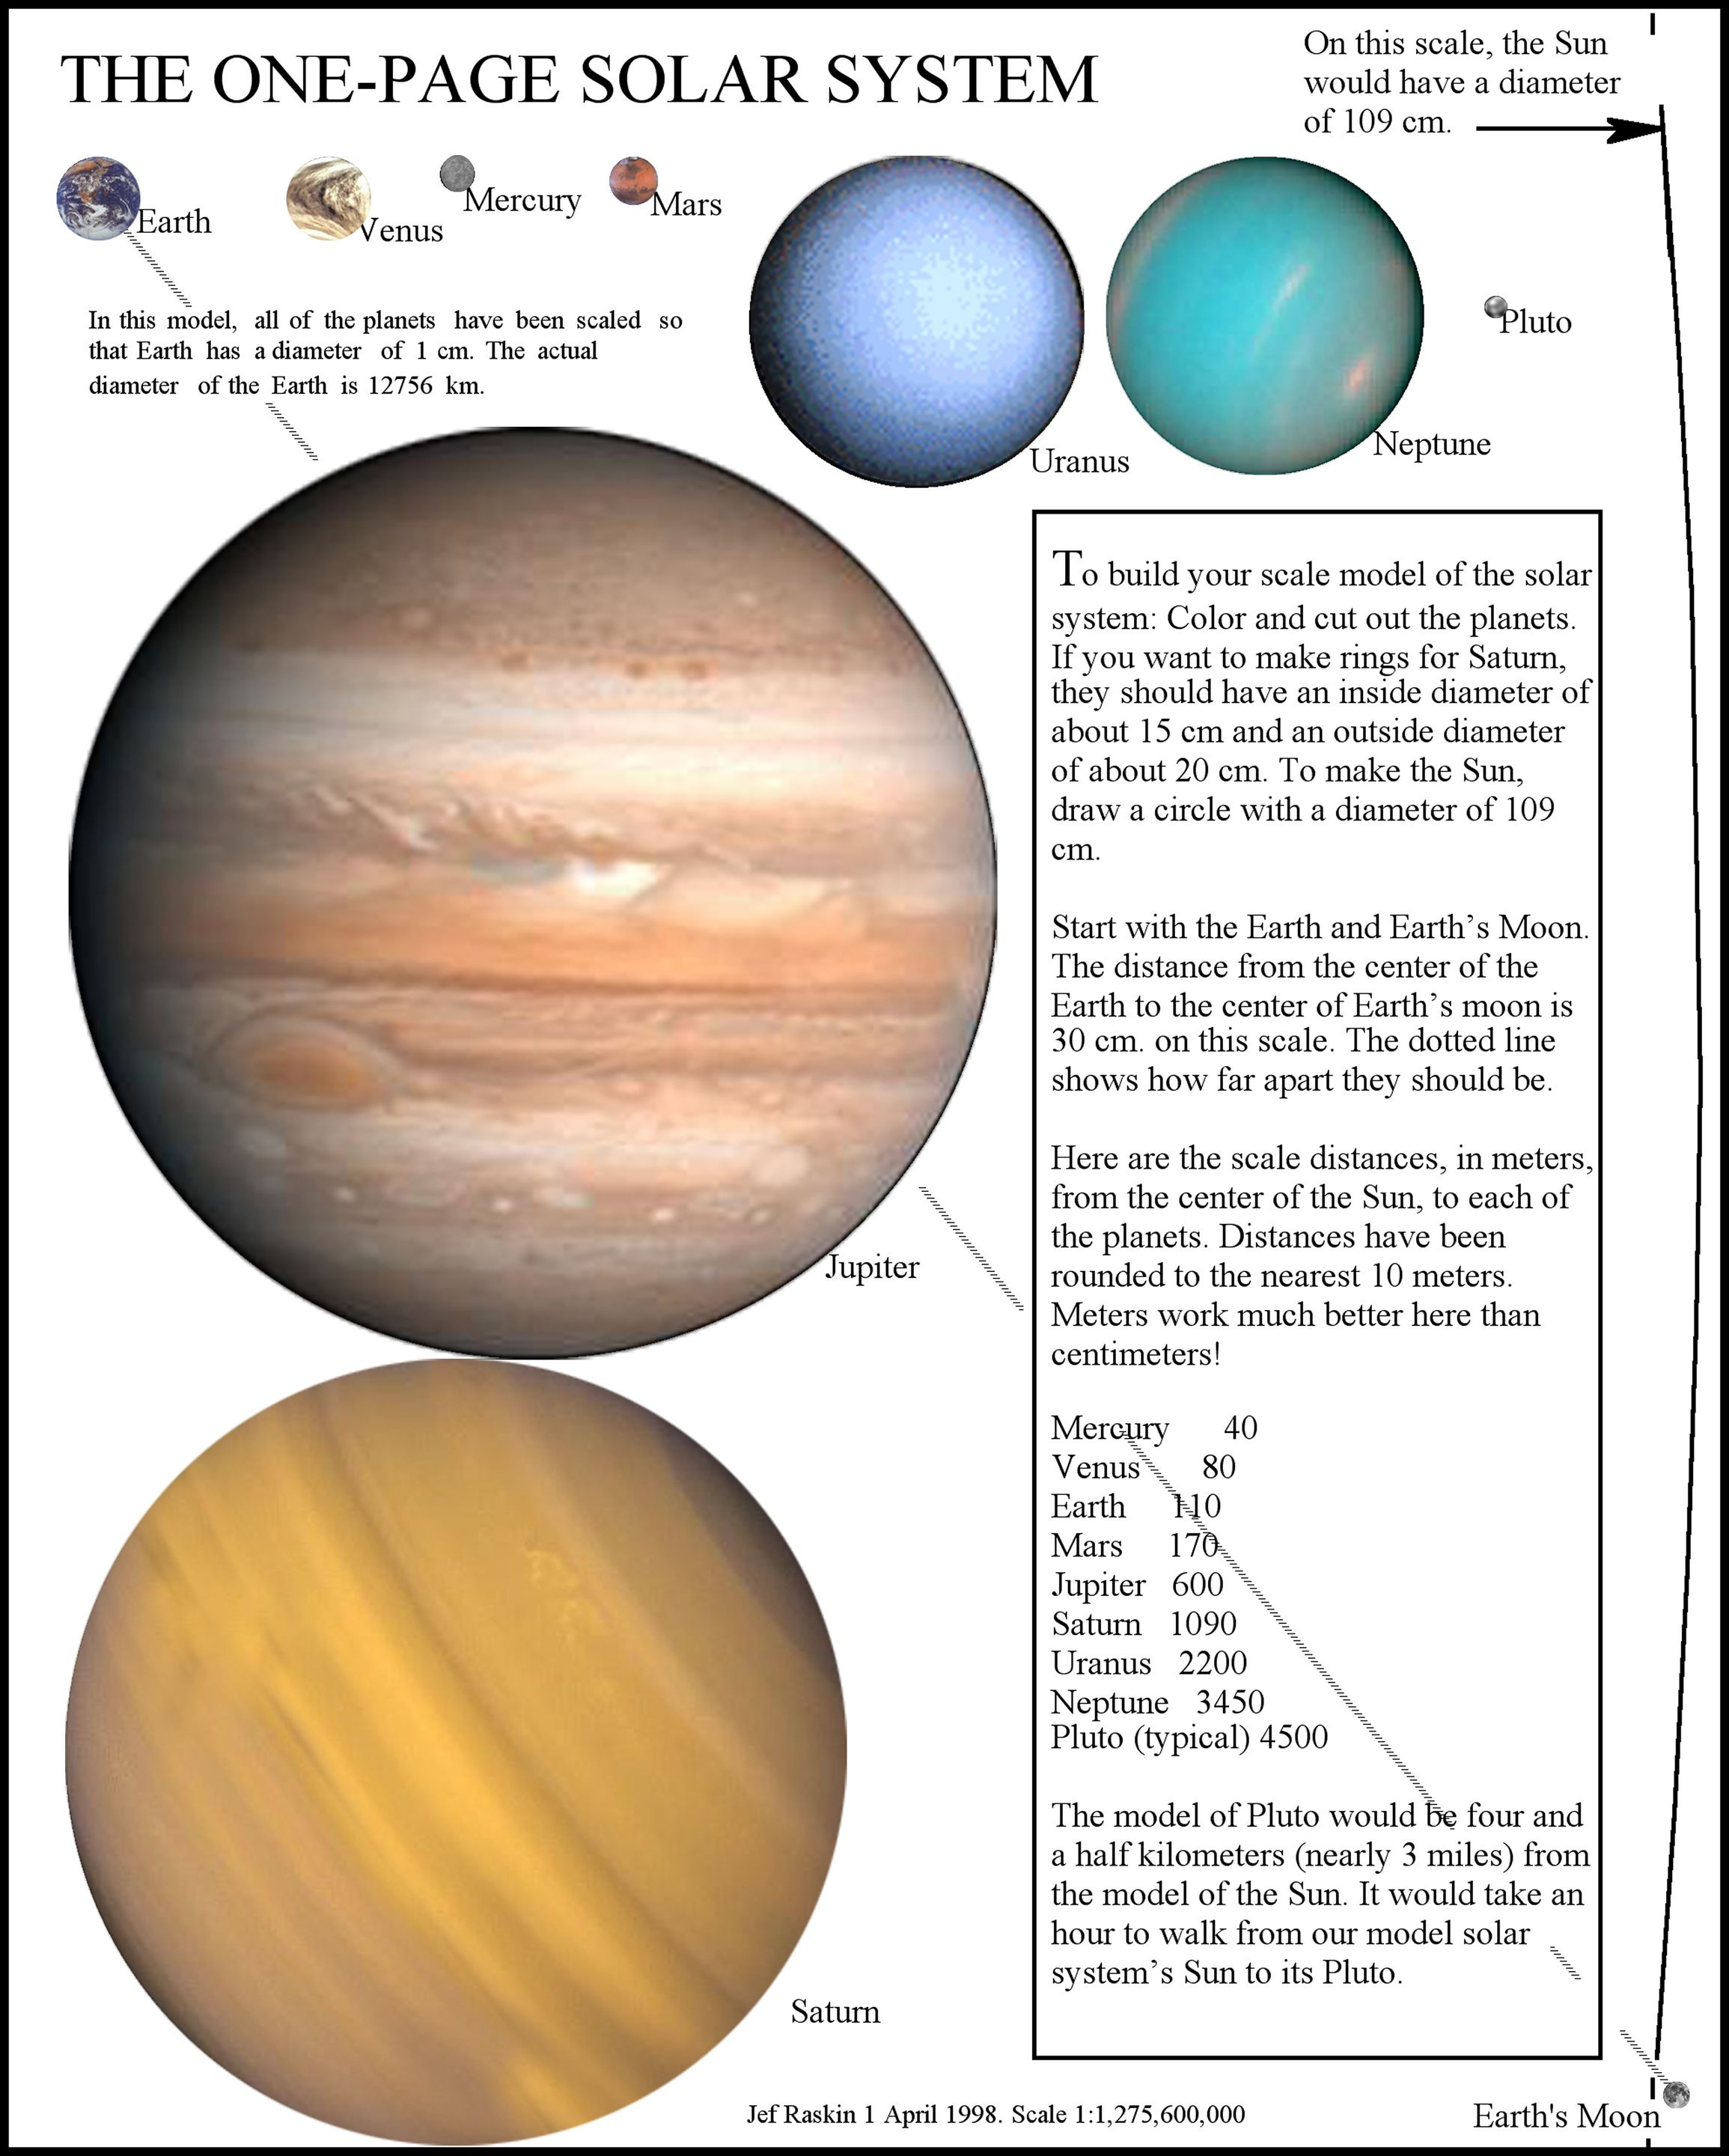 372884044122342590 on Solar System Planets Cutouts